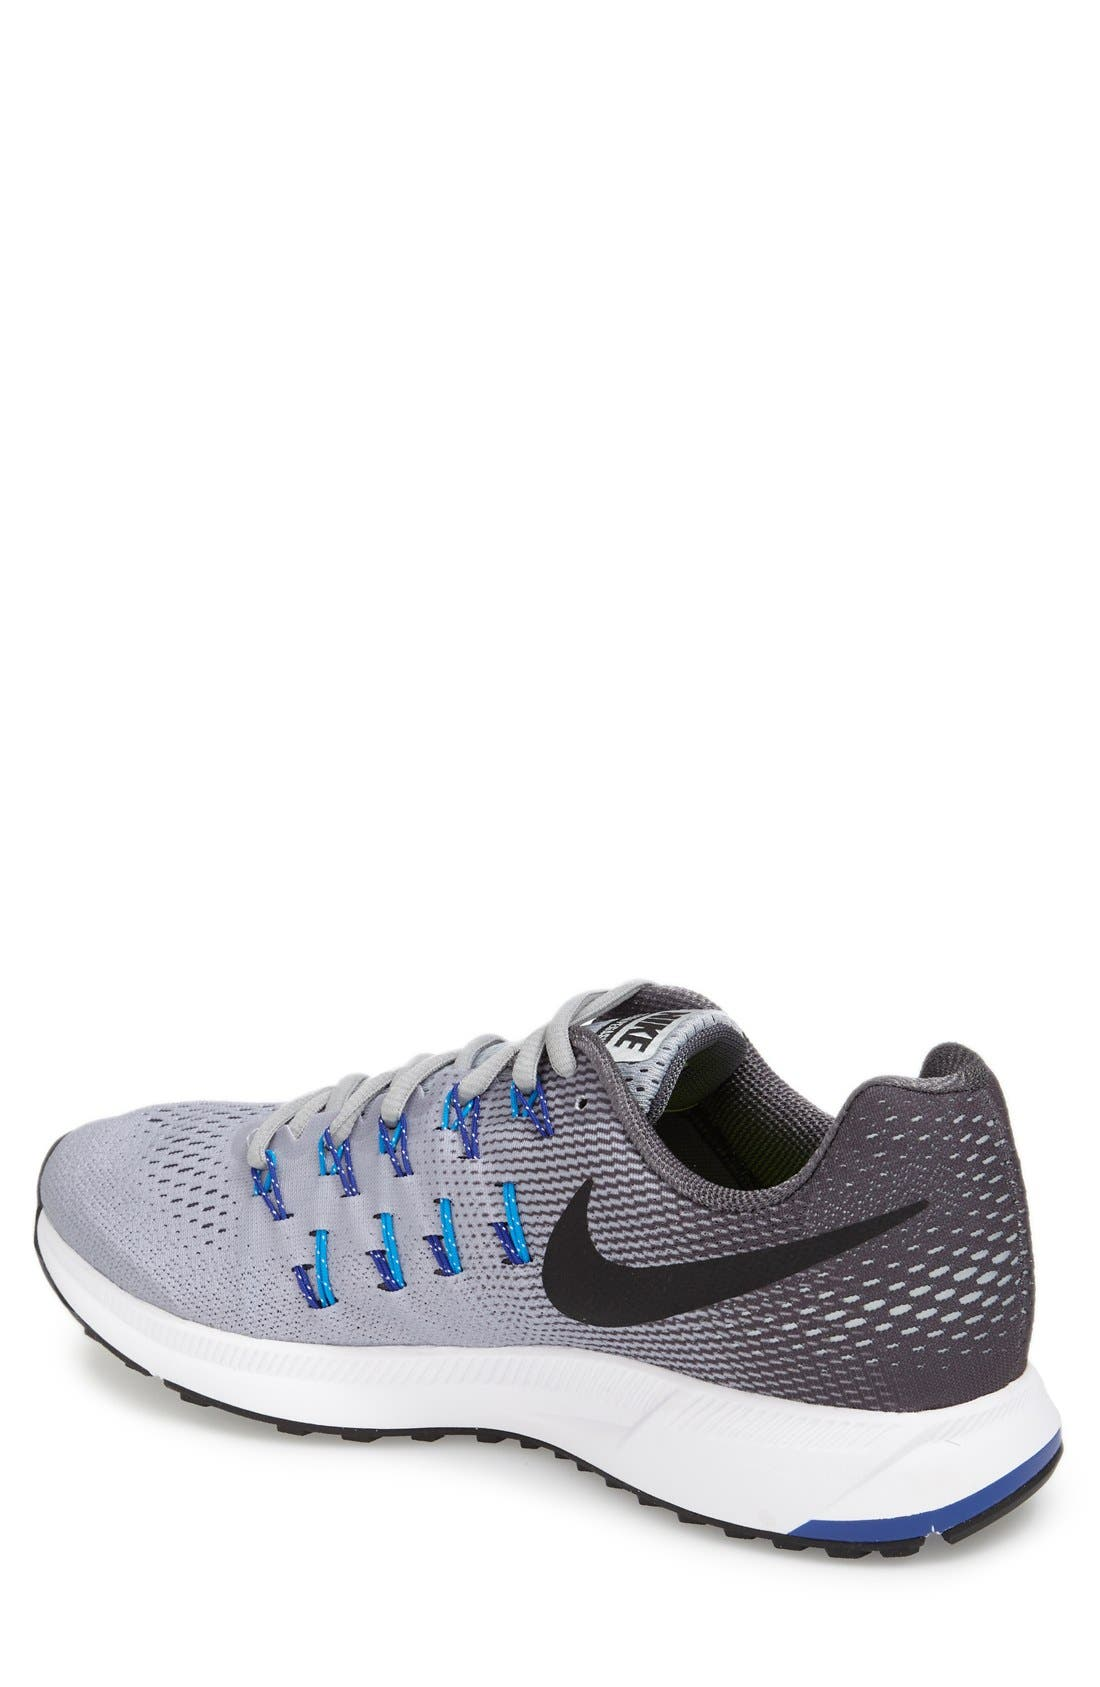 'Air Zoom Pegasus 33' Sneaker,                             Alternate thumbnail 2, color,                             Grey/ Black/ Blue Glow